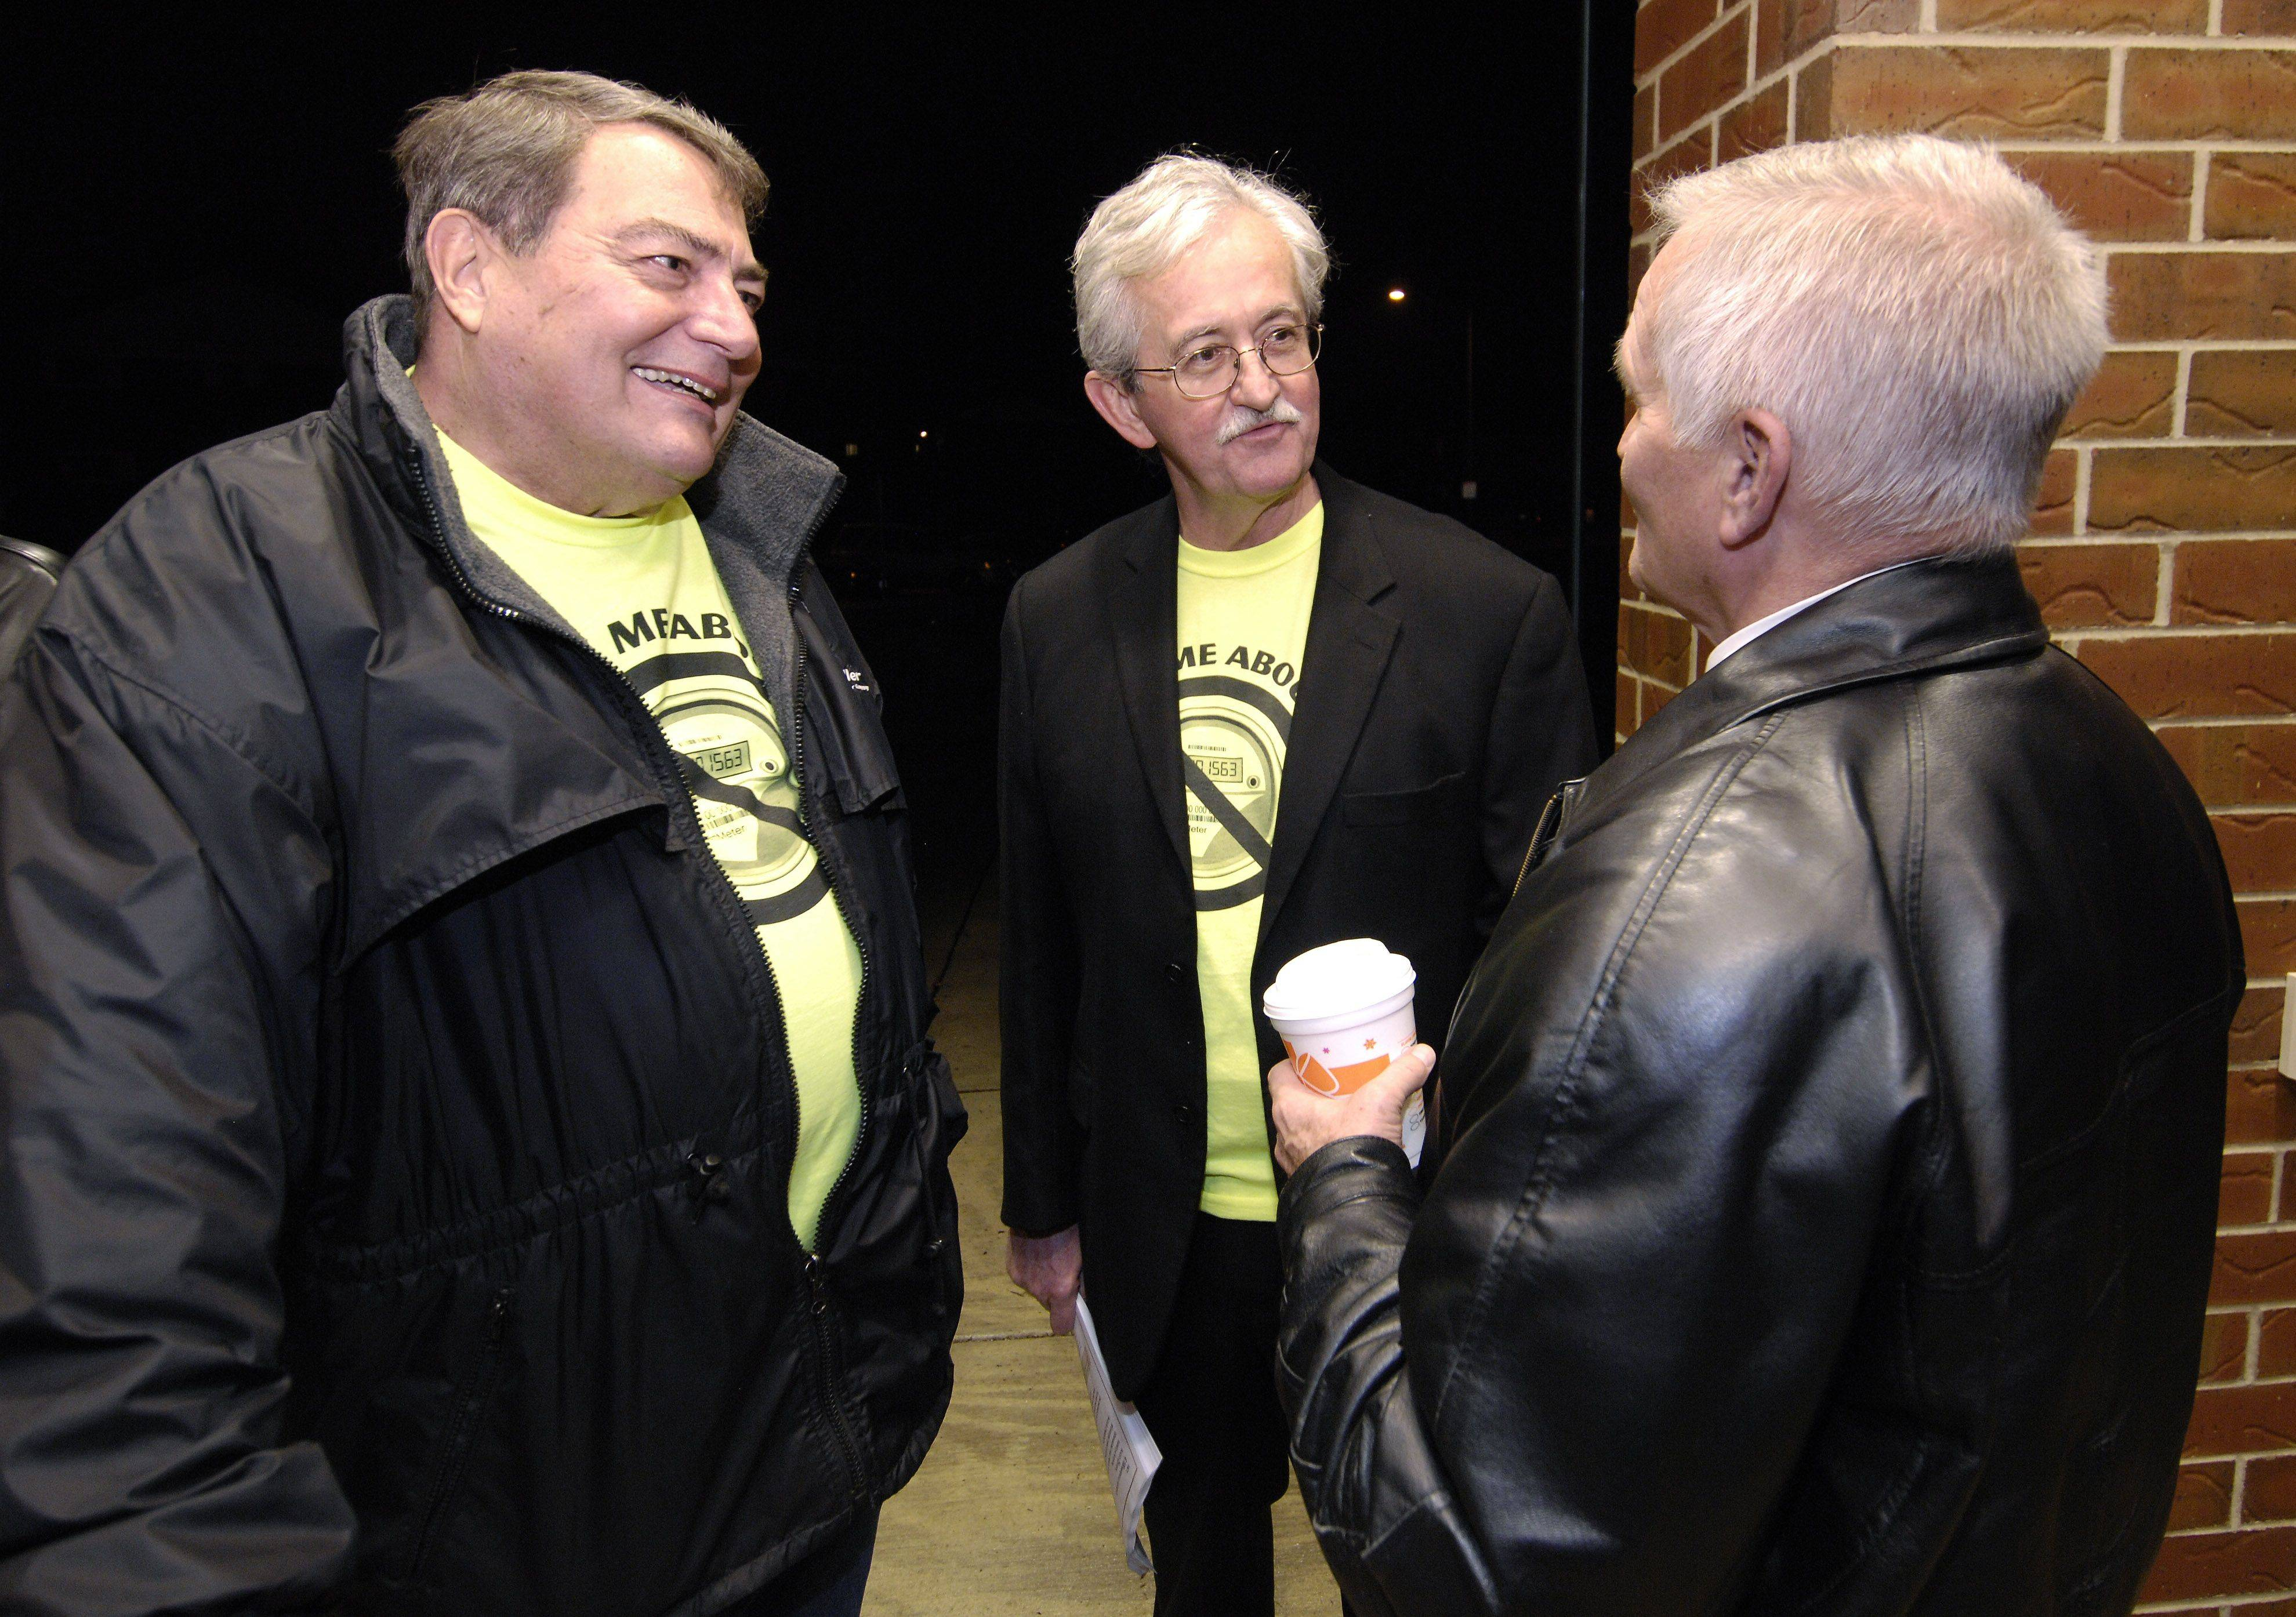 Smart Grid opponents Jerry Schilling and John Glass speak with Dick Furstenau outside the open house at Washington Junior High, where Naperville residents could learn more about the Naperville Smart Grid Initiative (NSGI).